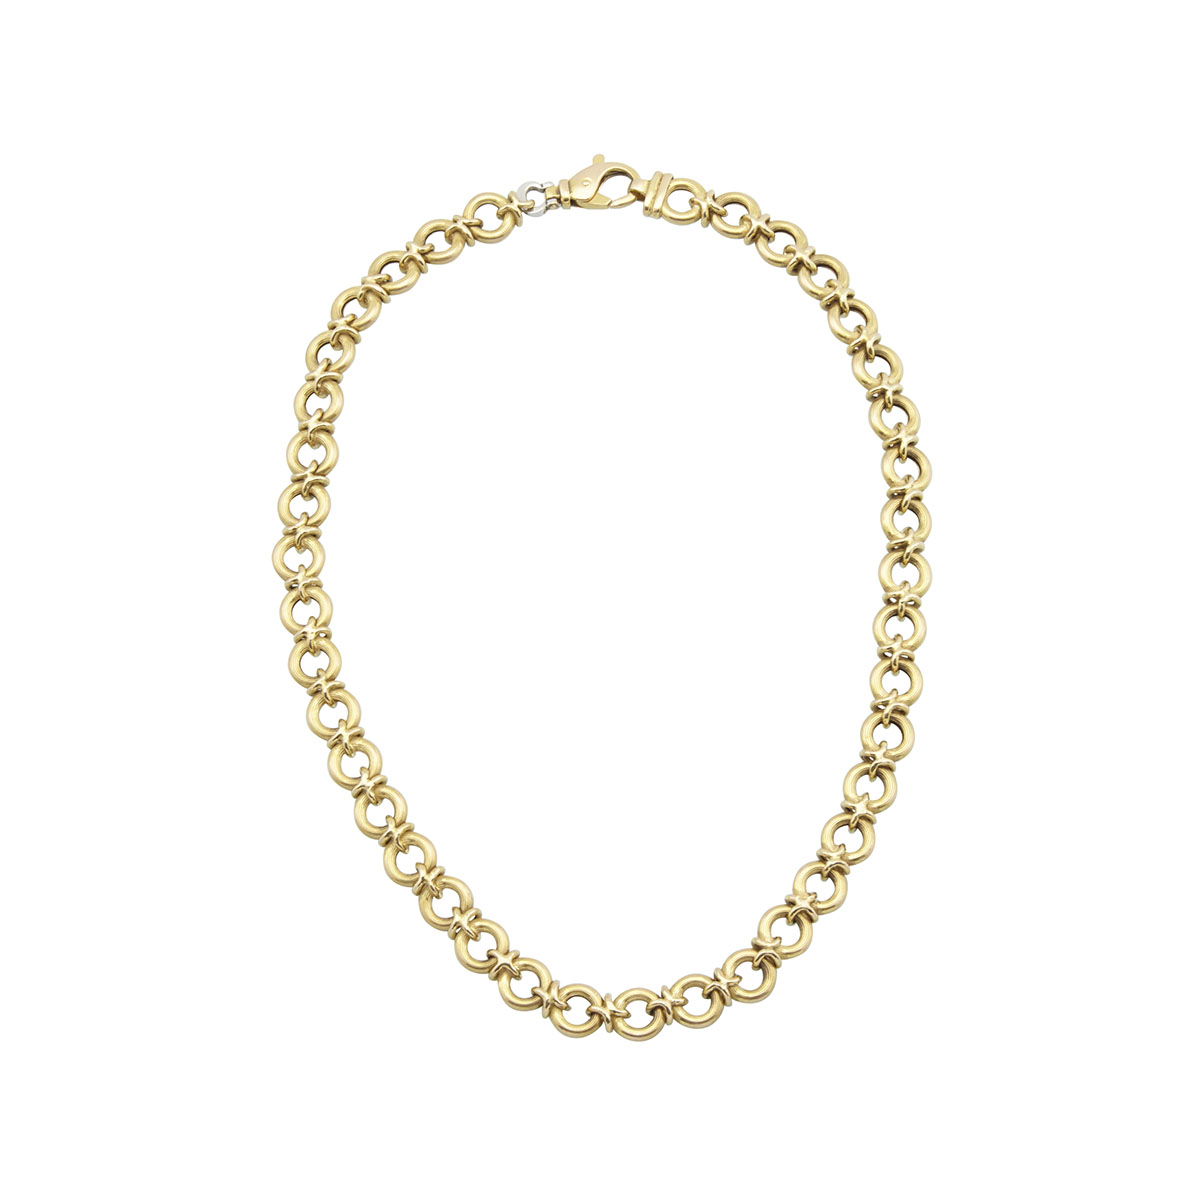 Italian 14k Yellow Gold Chain